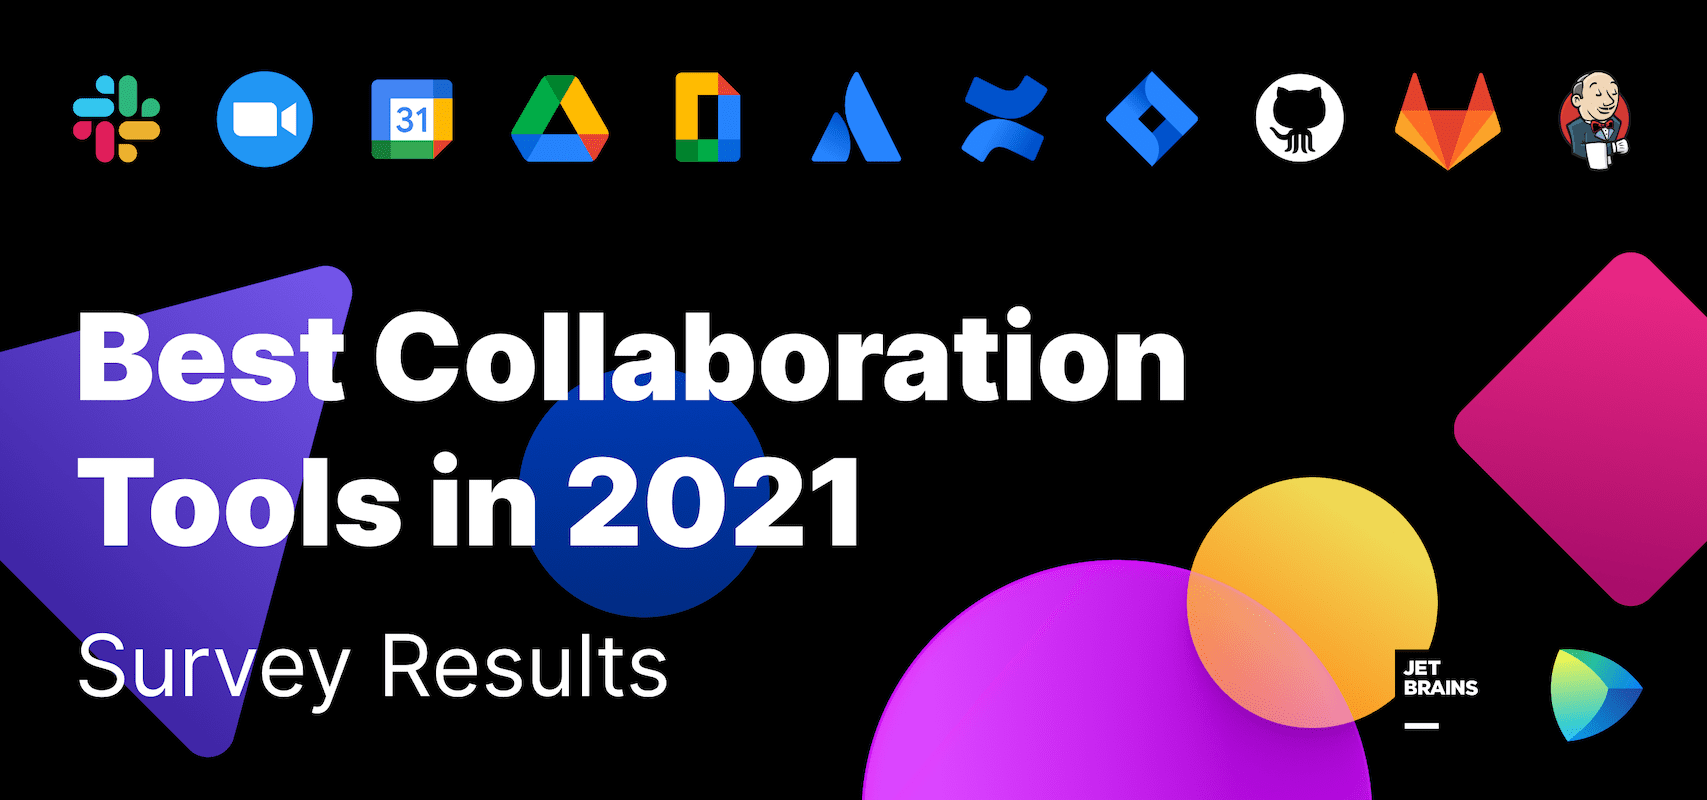 Best Collaboration Tools in 2021 - Survey Results